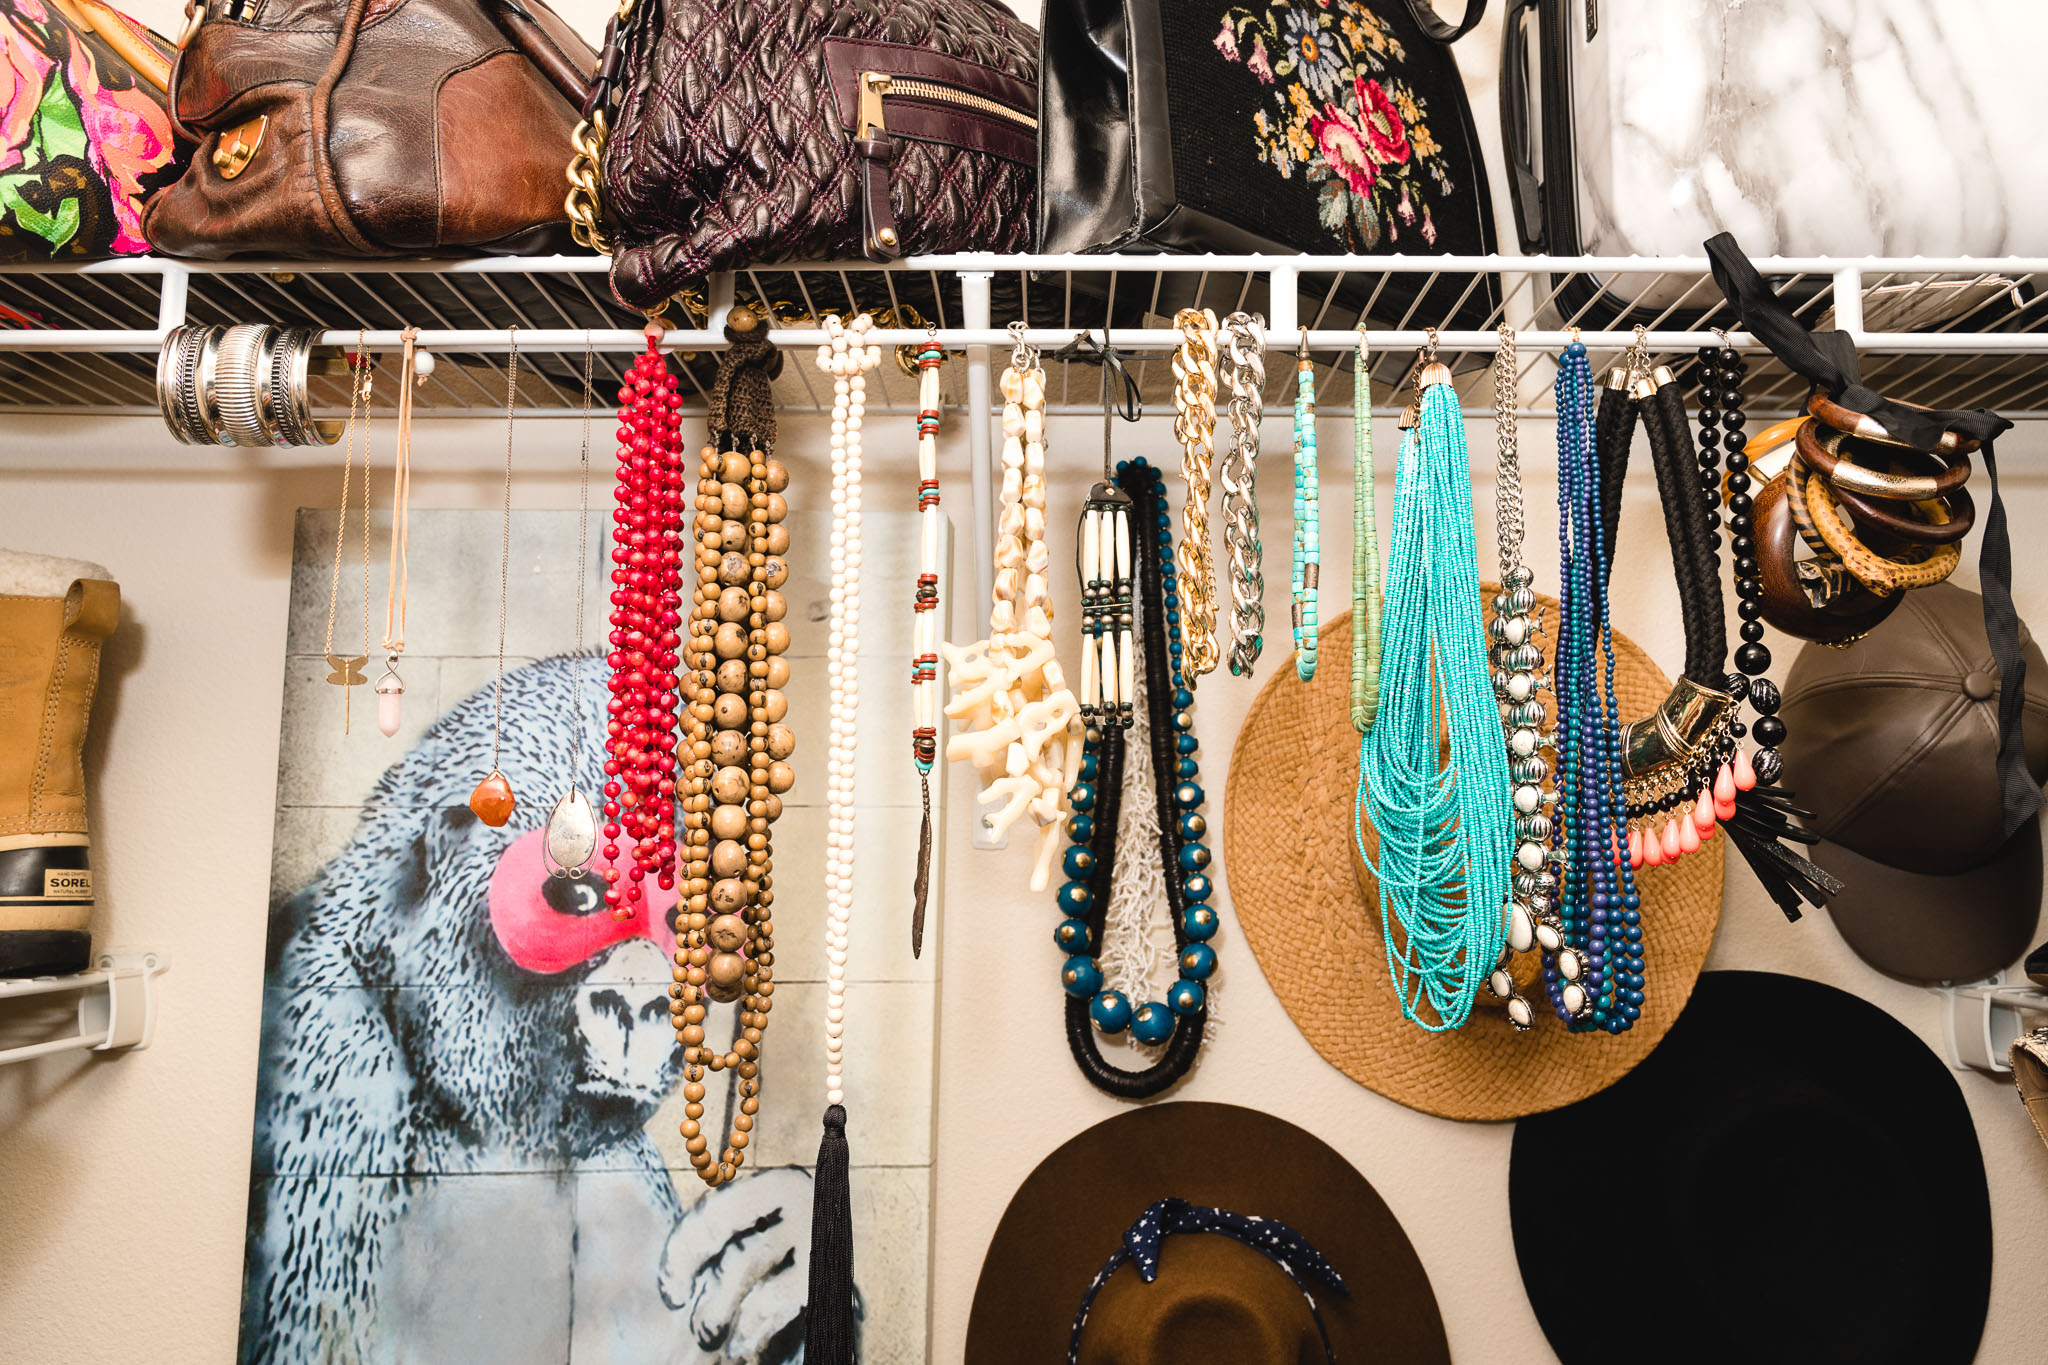 My necklaces hang right above my folded sweaters, so I can easily see and use each piece.